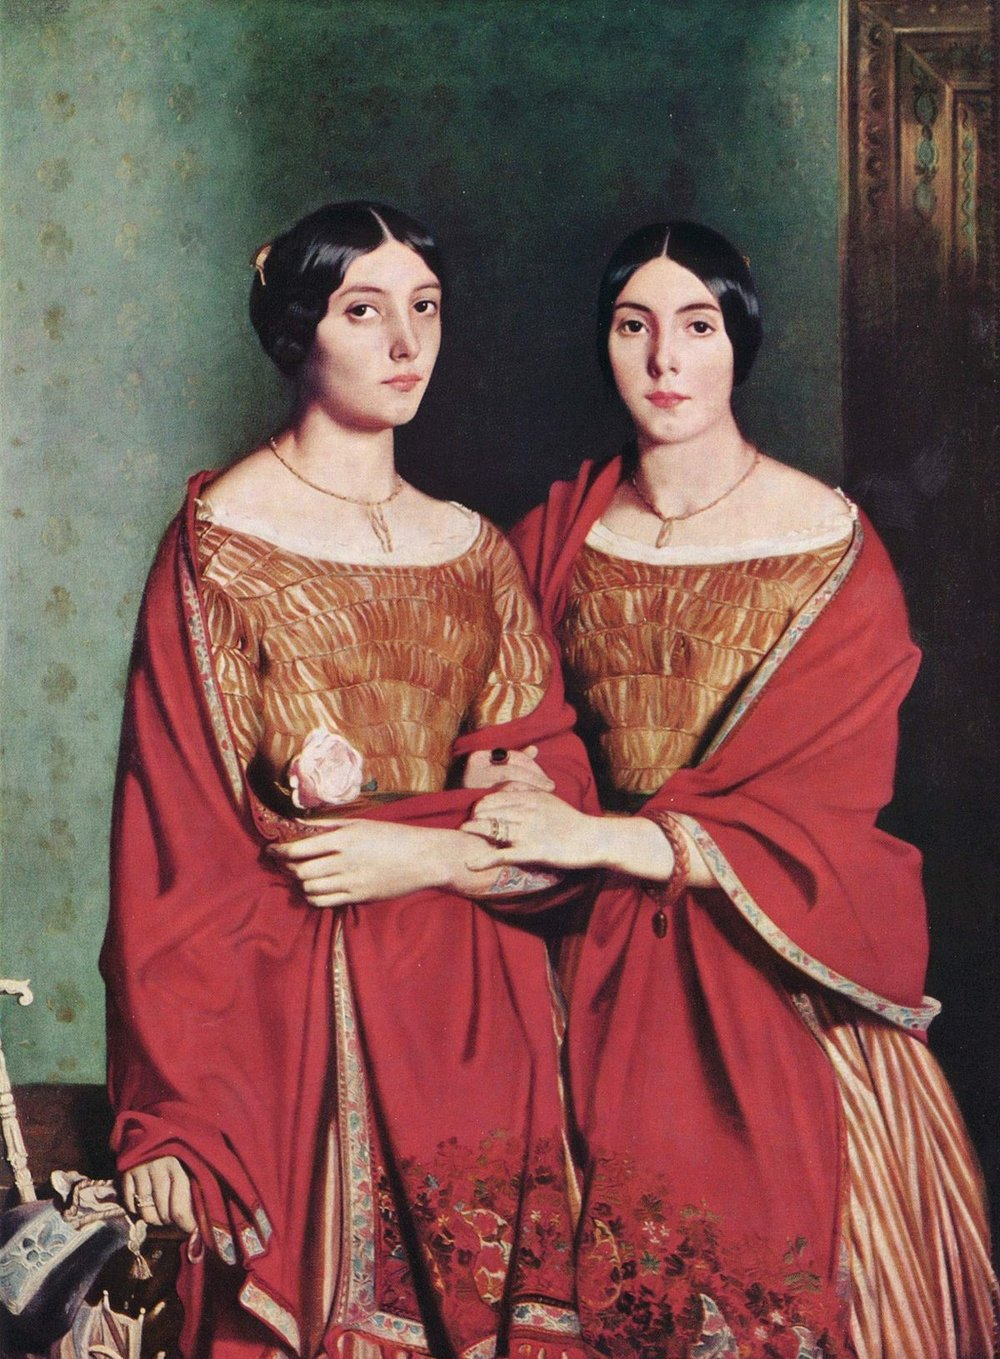 the-two-sisters-by-theodore-chasseriau-famous-art-handmade-oil-painting-on-canvas (1).jpg